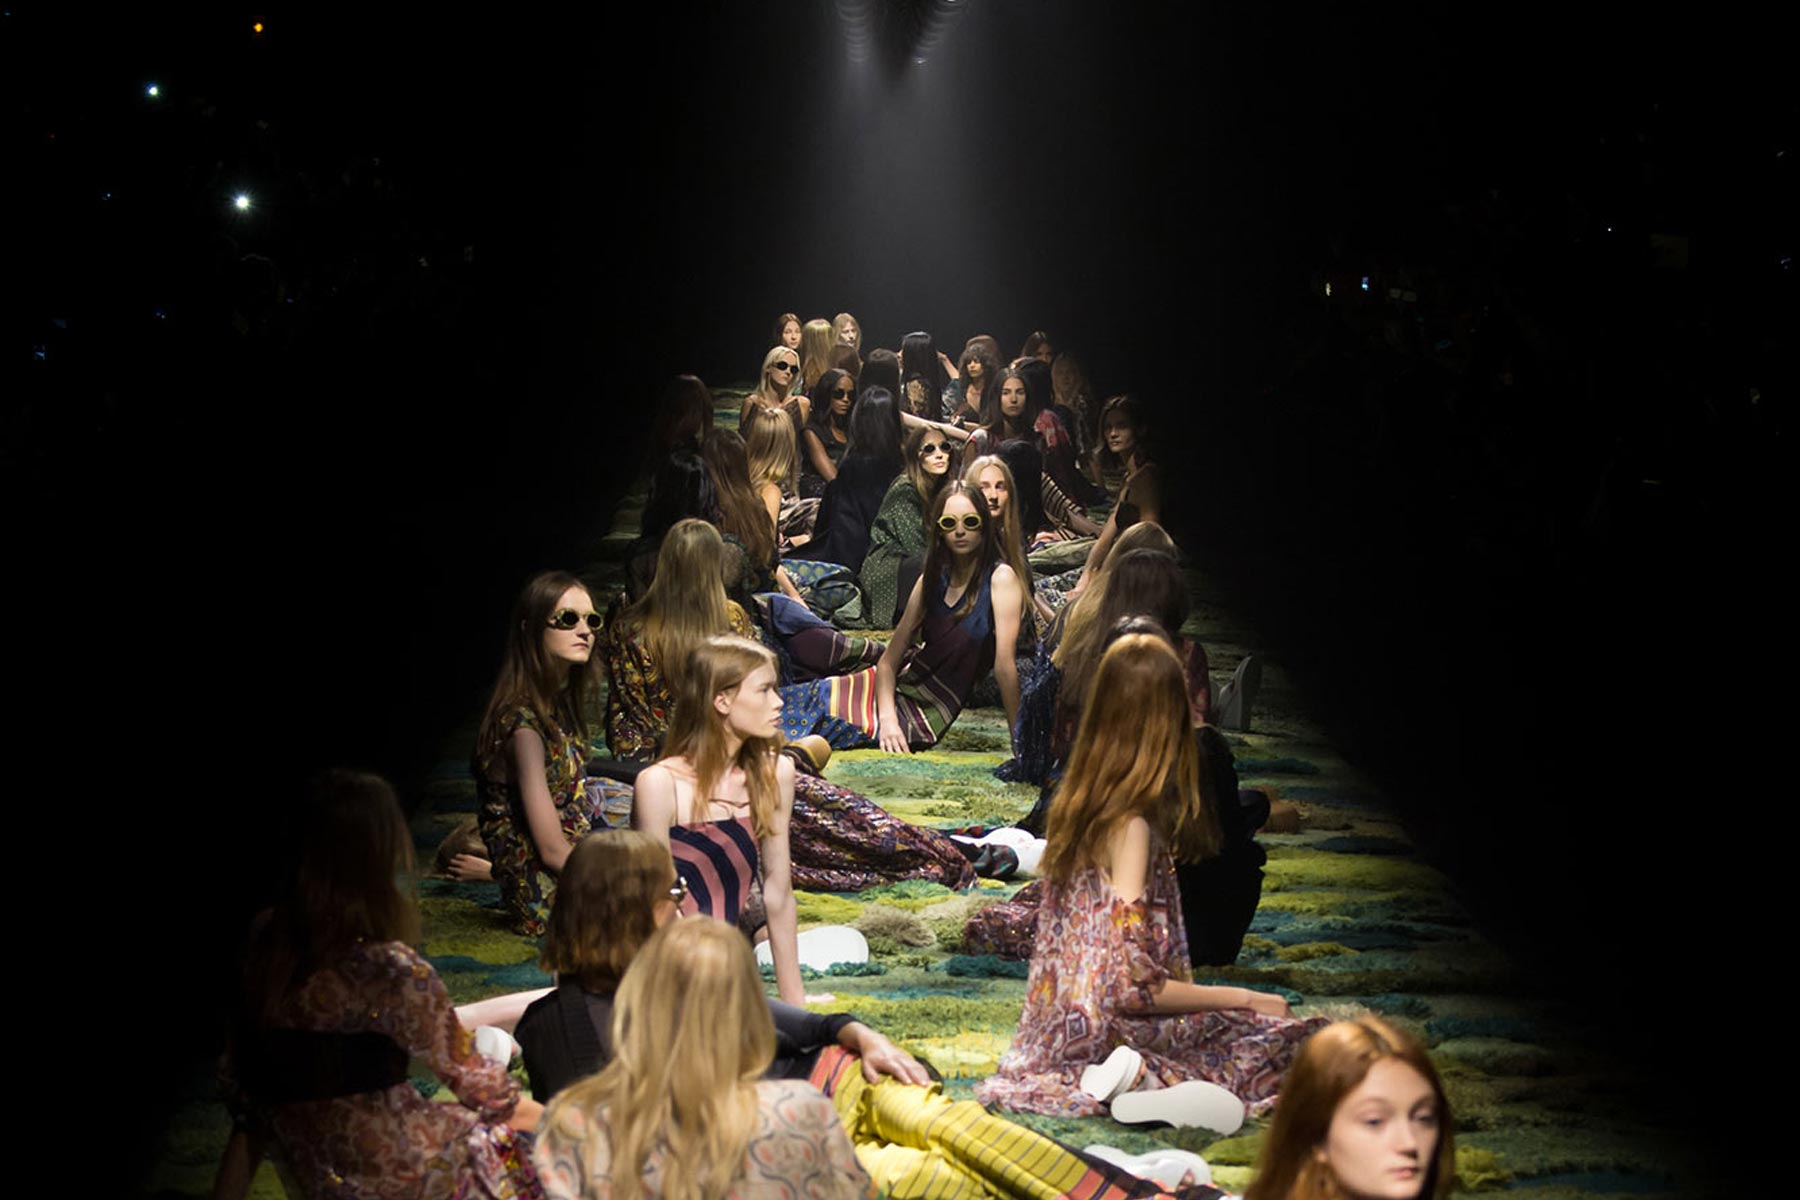 DRIES VAN NOTEN S/S 2015 PARIS FASHION WEEK